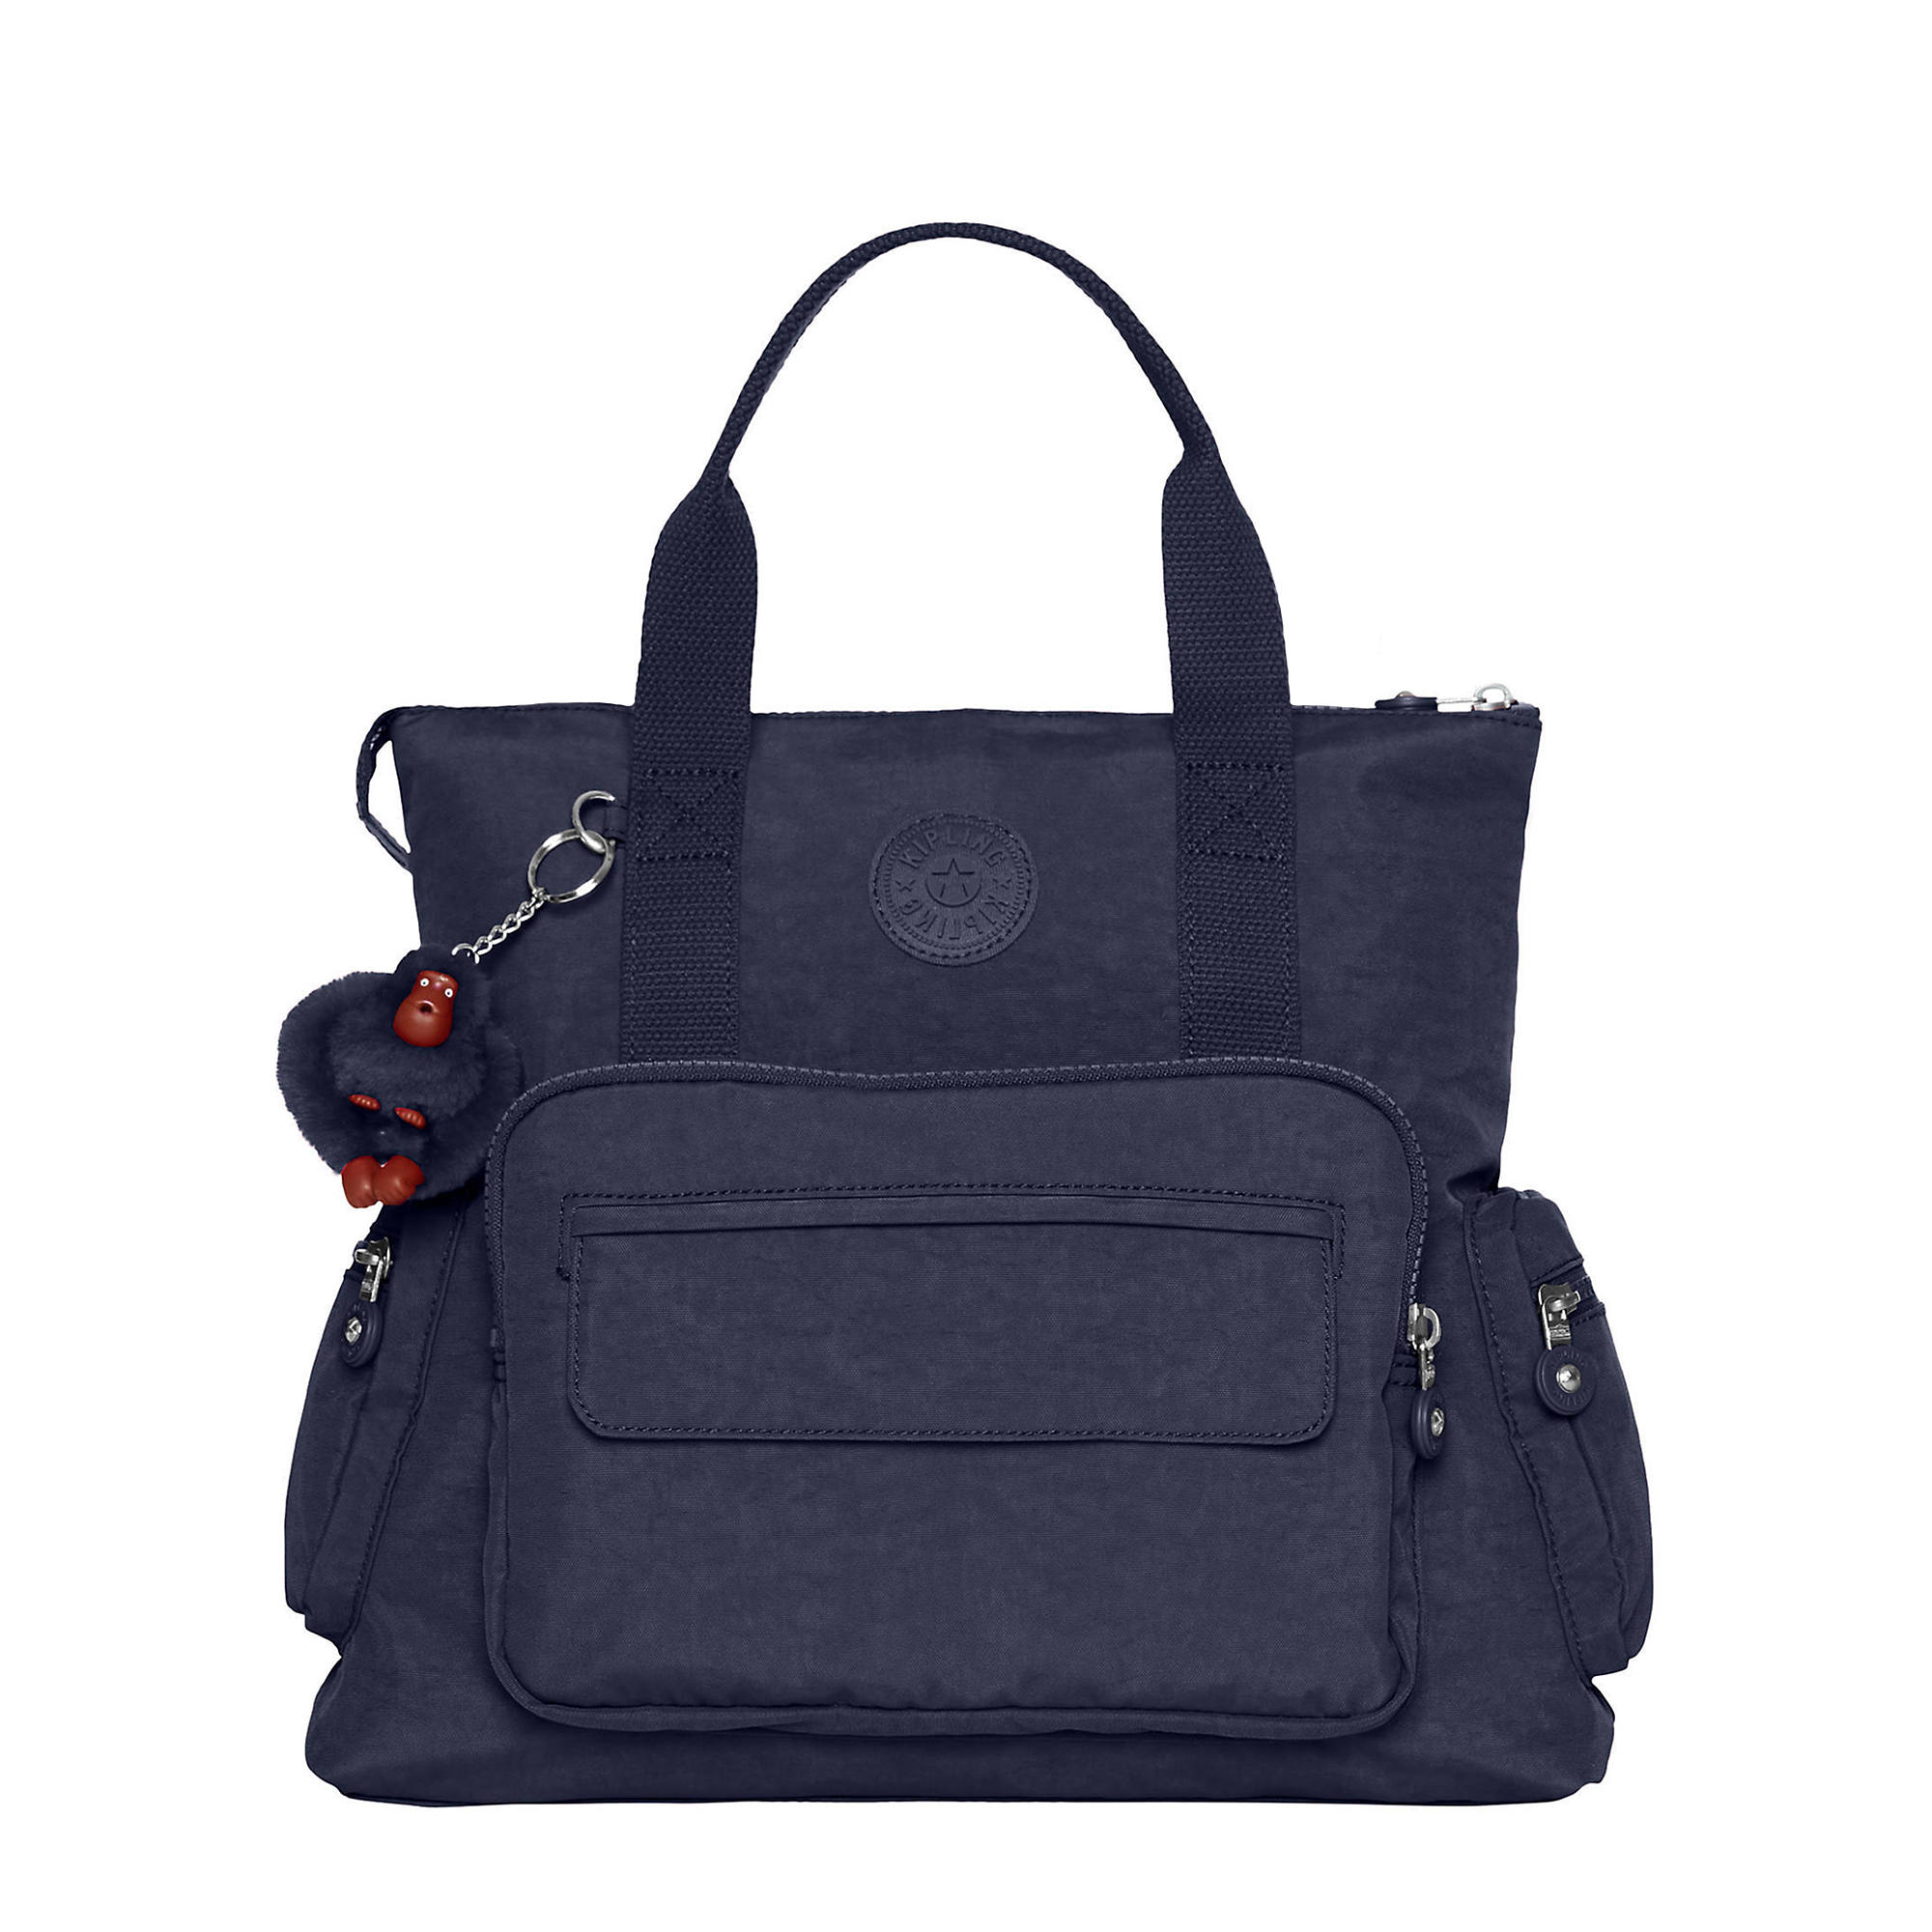 Alvy 2 In 1 Convertible Tote Bag Backpack